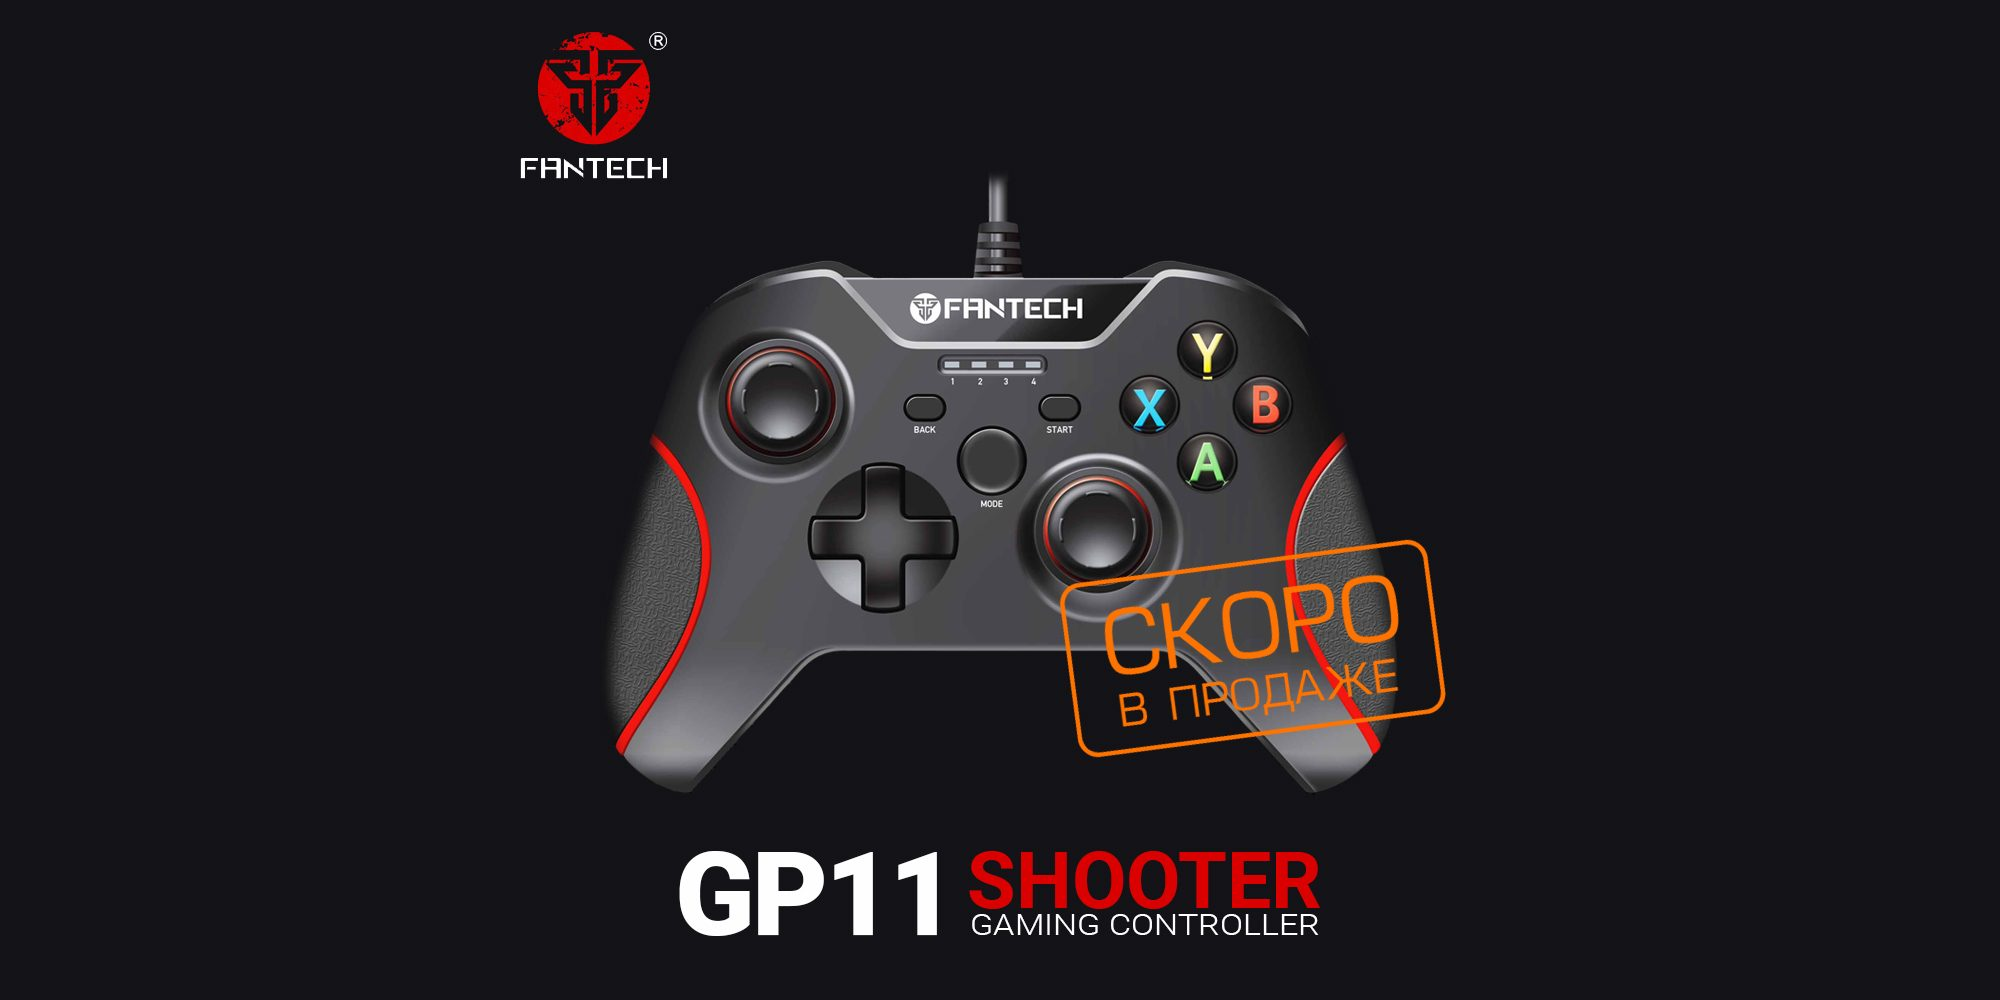 Геймпад Fantech Shooter GP11